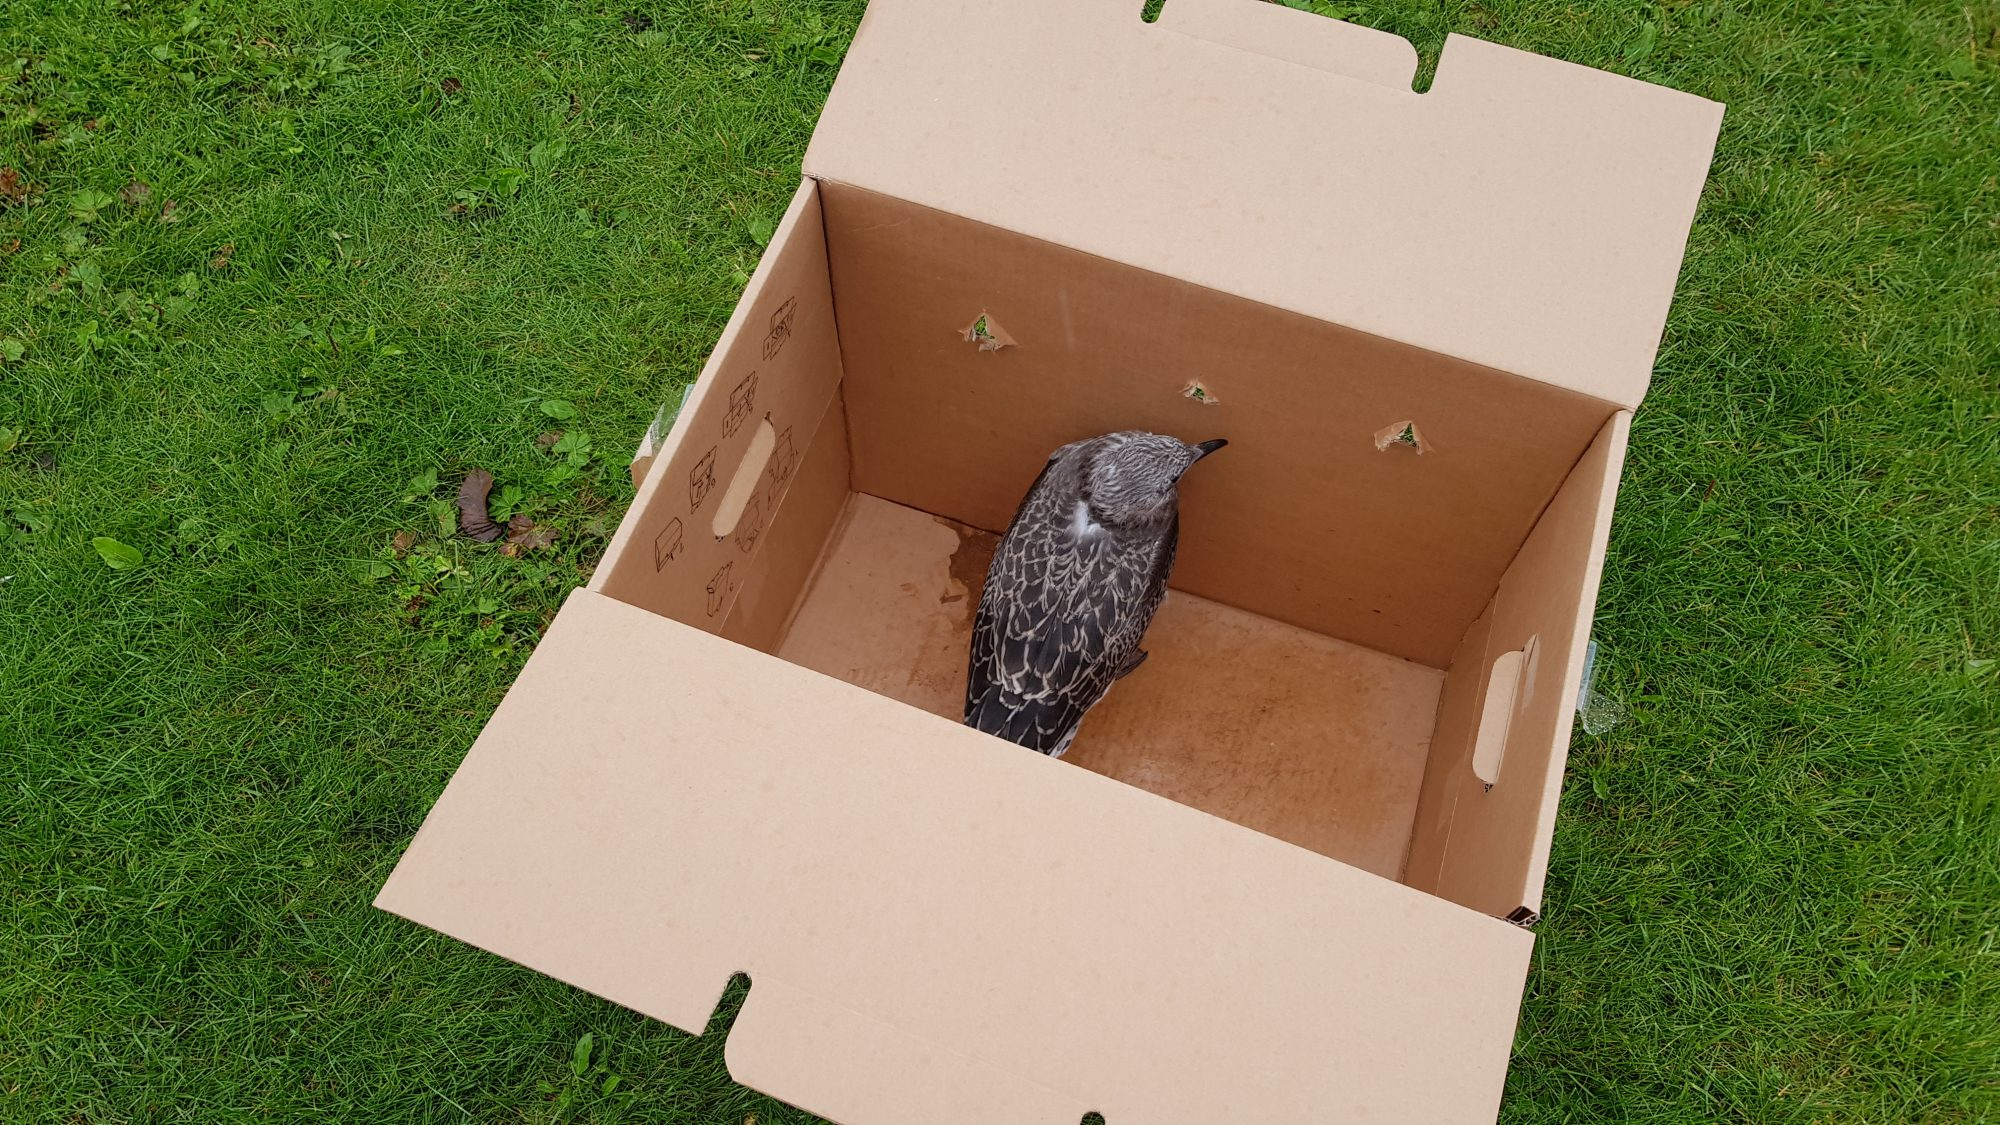 A photo of a baby seagull sat in a cardboard box, placed on a grass surface